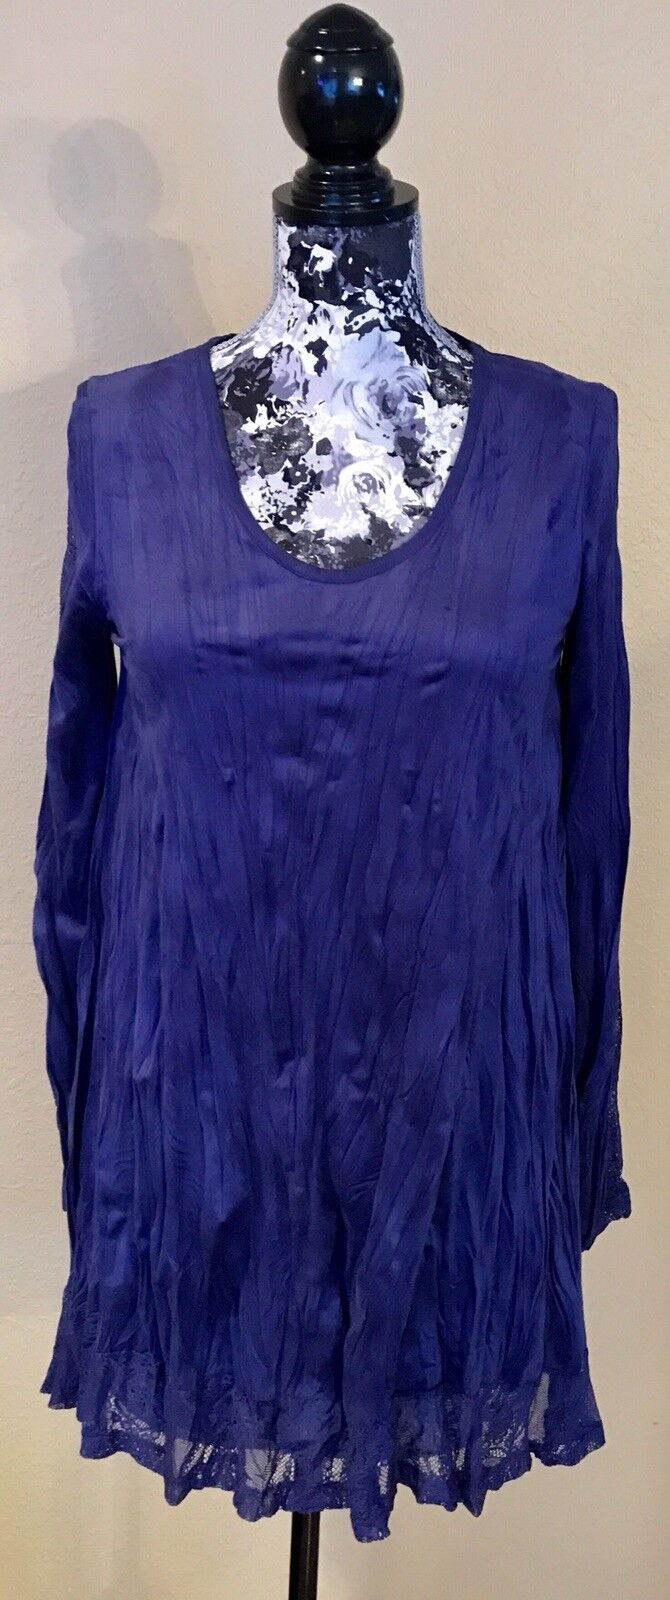 Beautiful French LAUREN VIDAL Größe S Iris Suede Blend Tunic Dress orig.